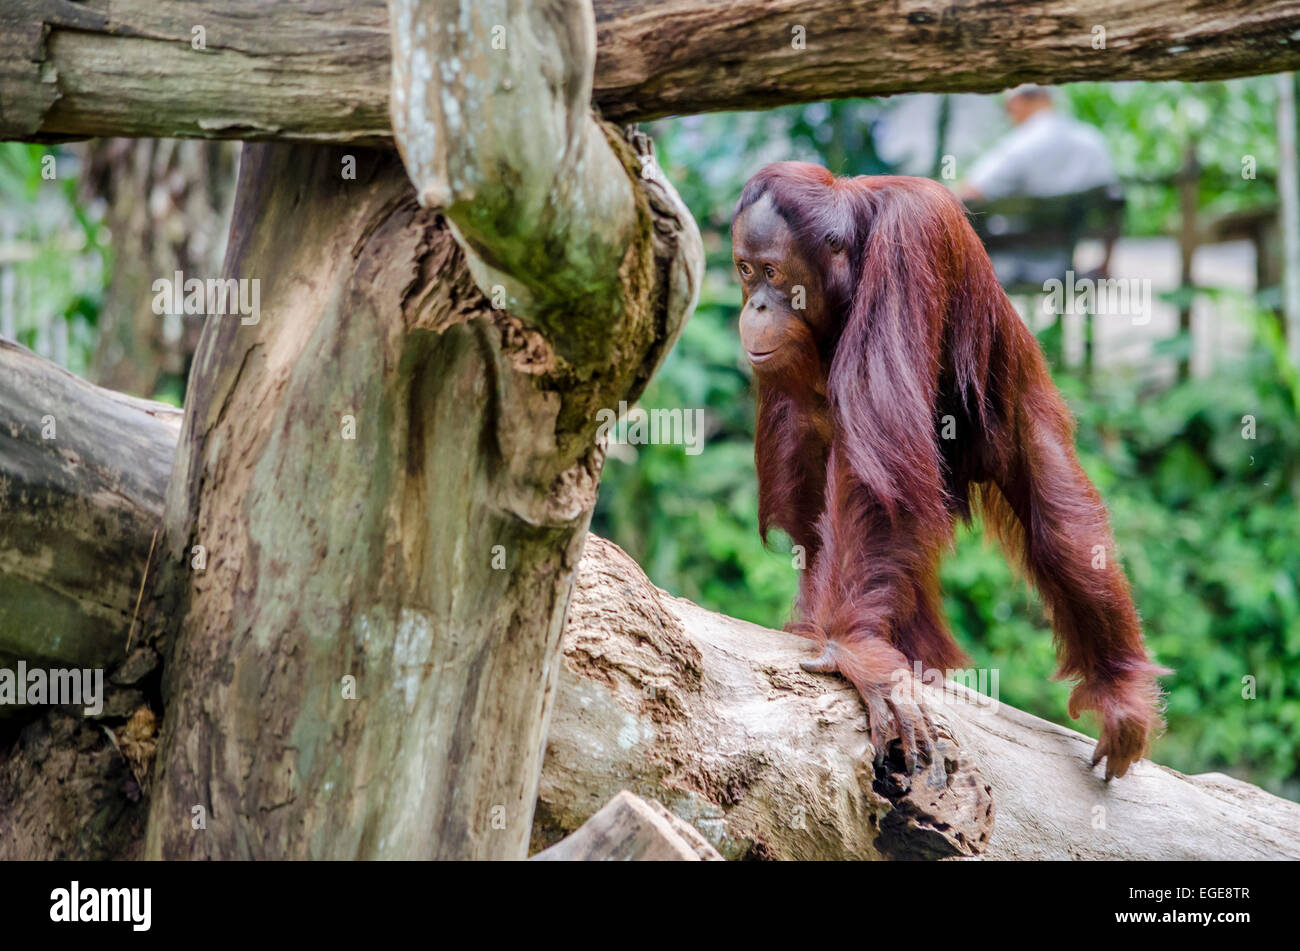 Young orangutan in a zoo walking on a trunk Stock Photo